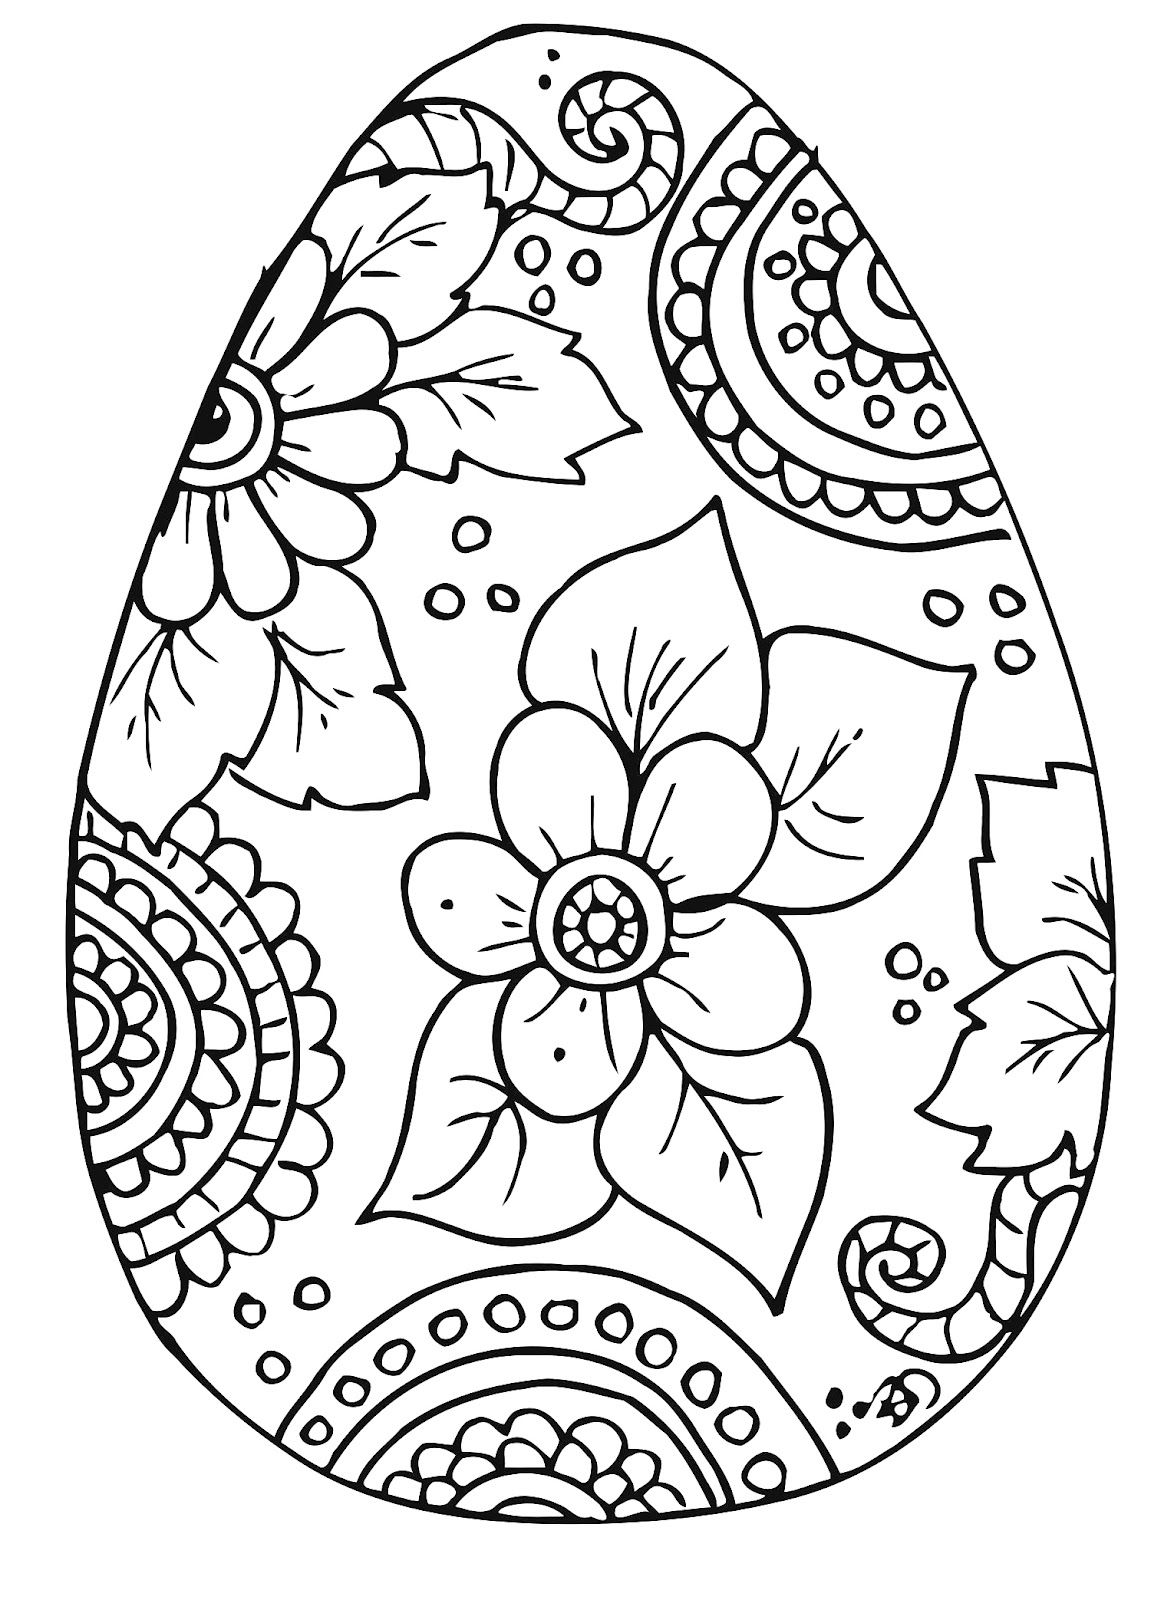 printable easter coloring pages for toddlers shine kids crafts easter free printable coloring pages printable toddlers easter coloring pages for